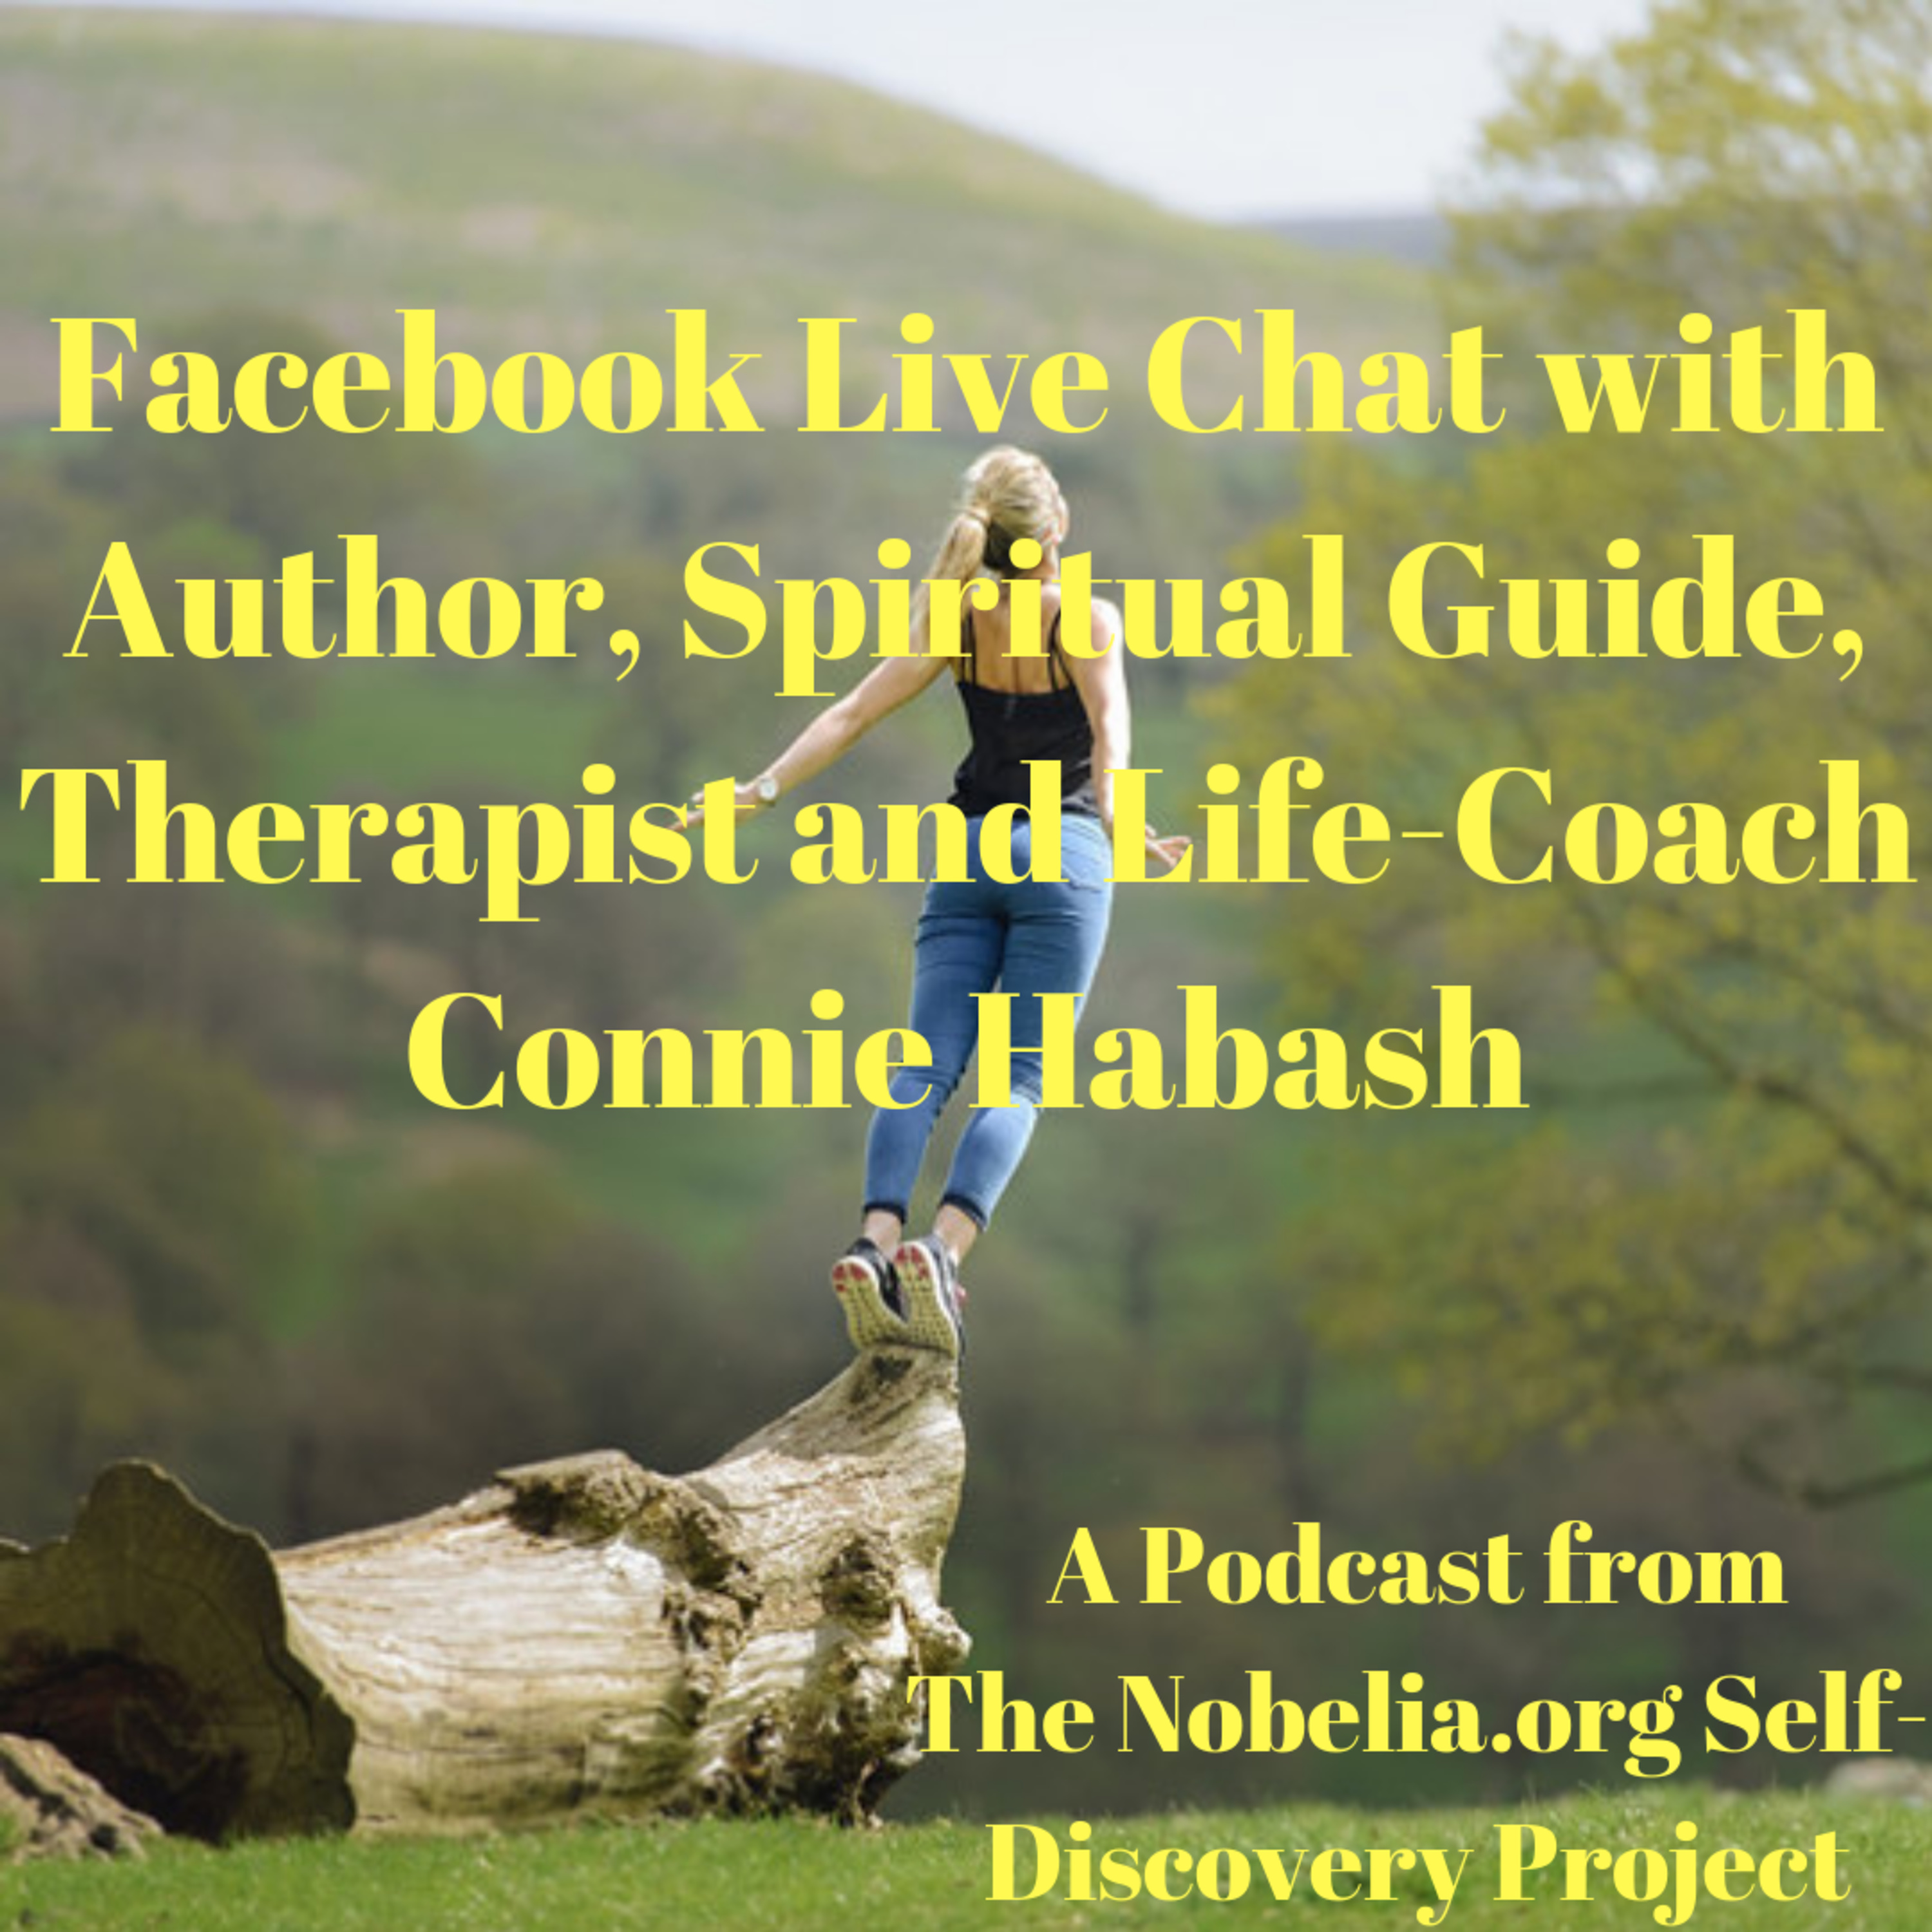 Facebook Live Chat with Author, Spiritual Guide, Therapist and Life-Coach Connie Habash